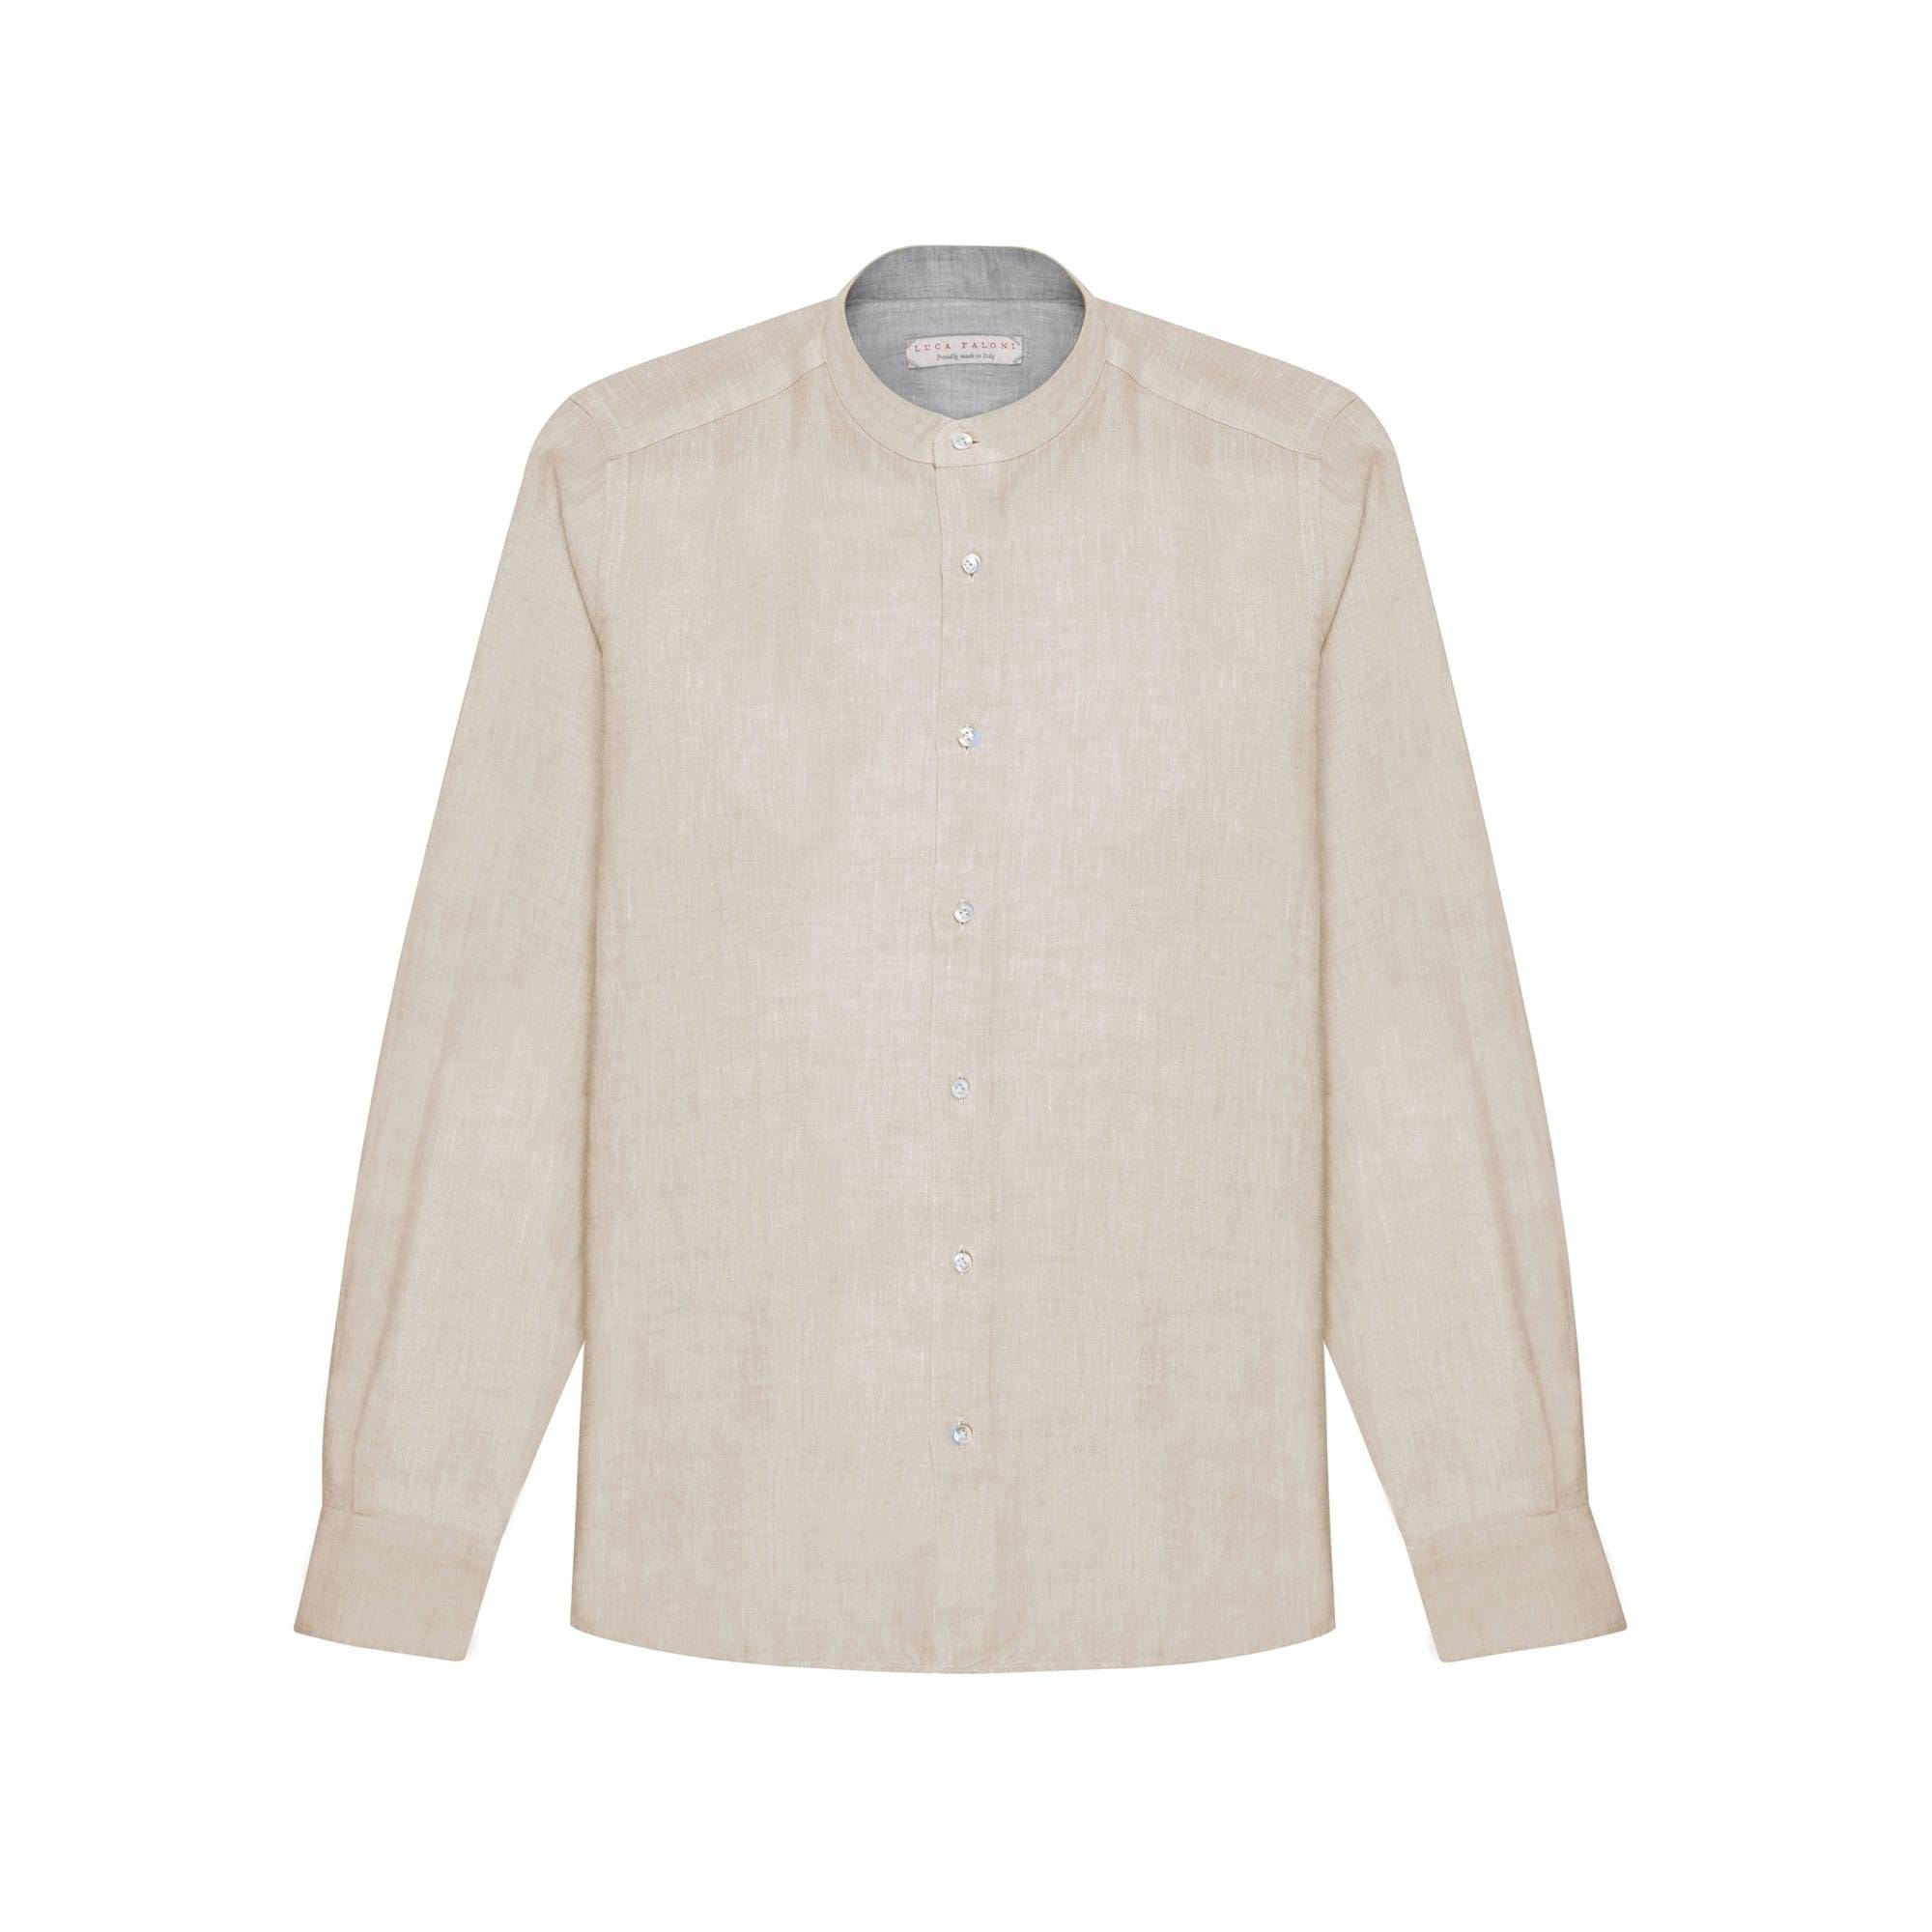 Luca Faloni Sand Beige Band Collar Linen Shirt Made in Italy